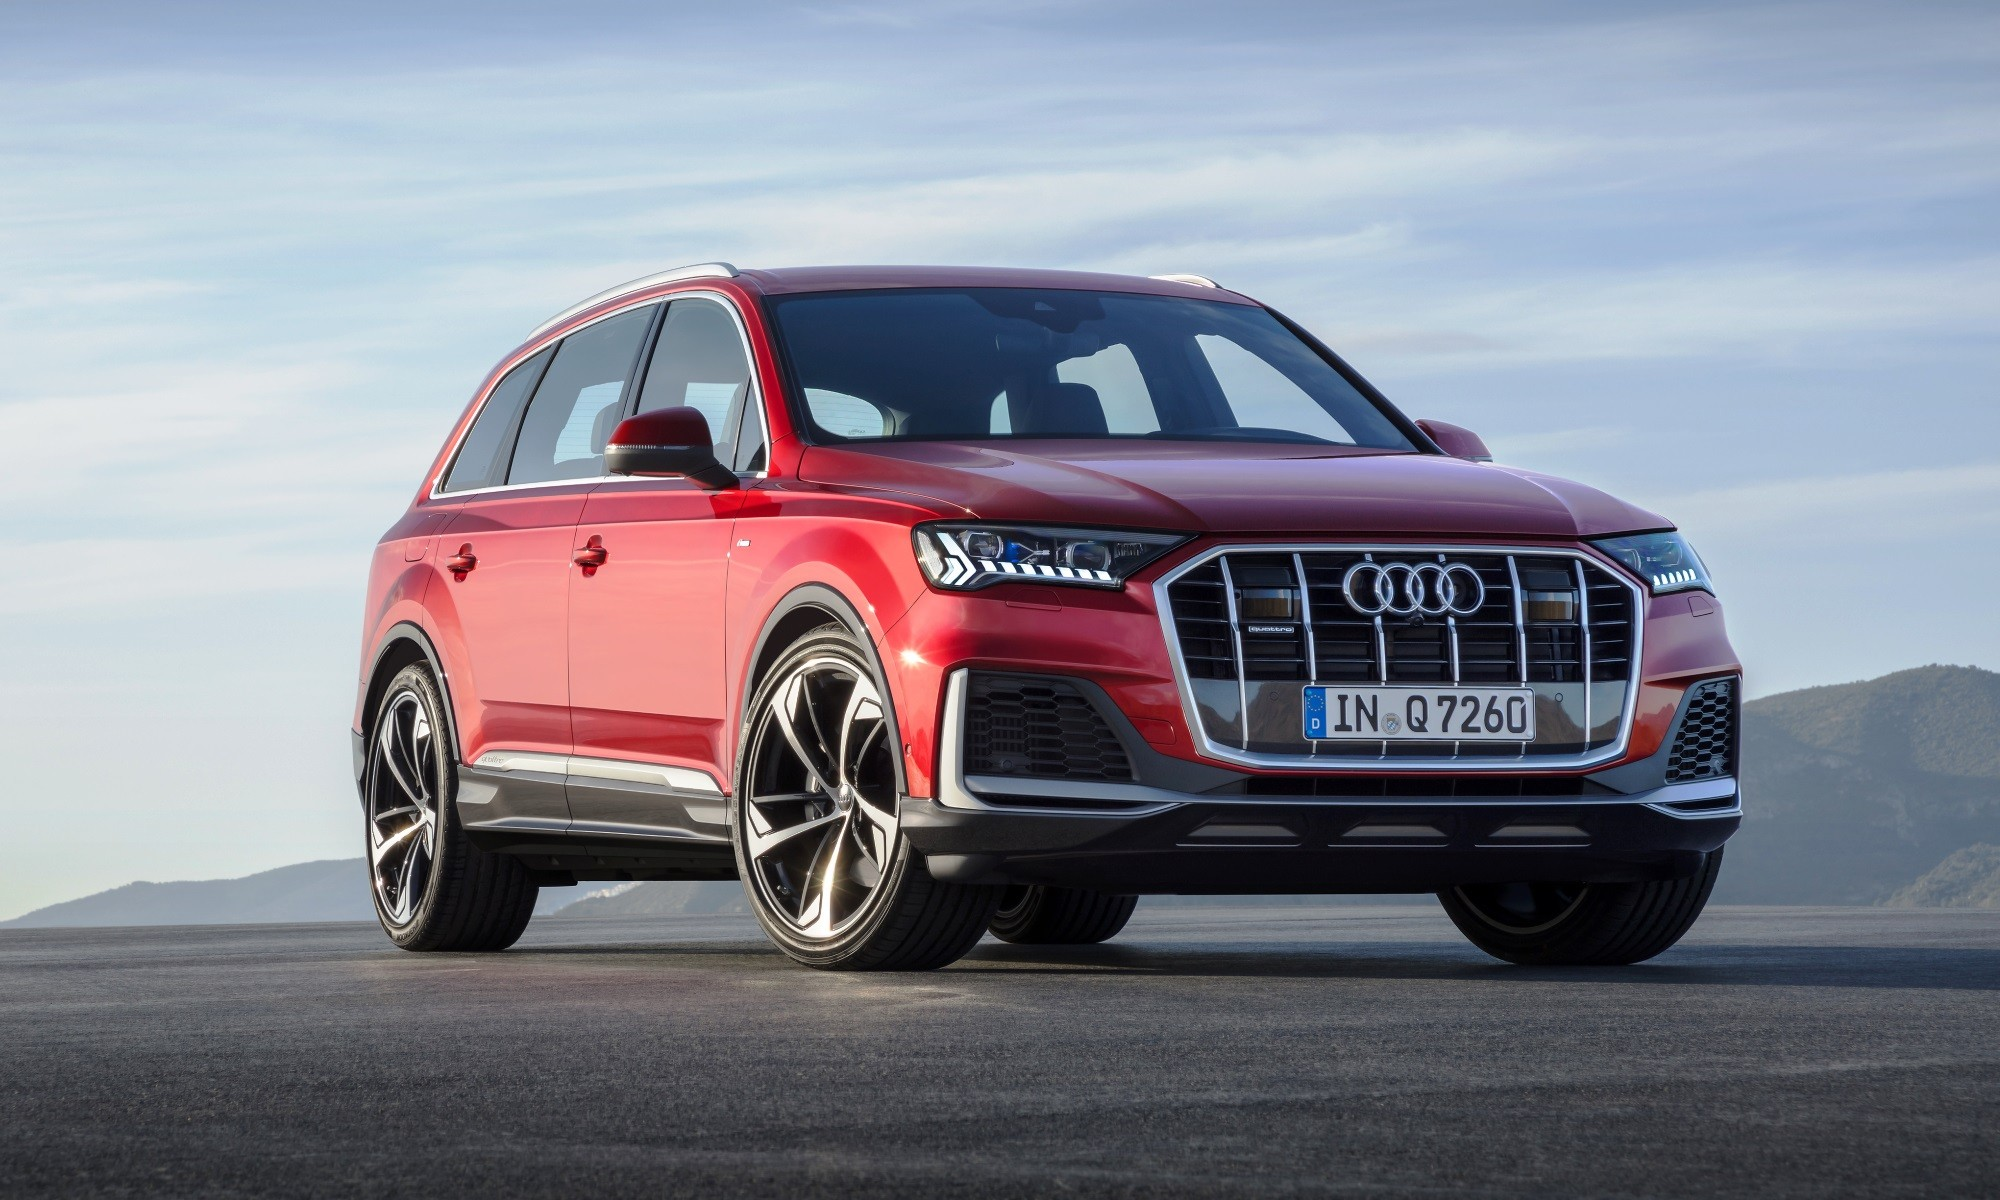 Facelifted Audi Q7 side